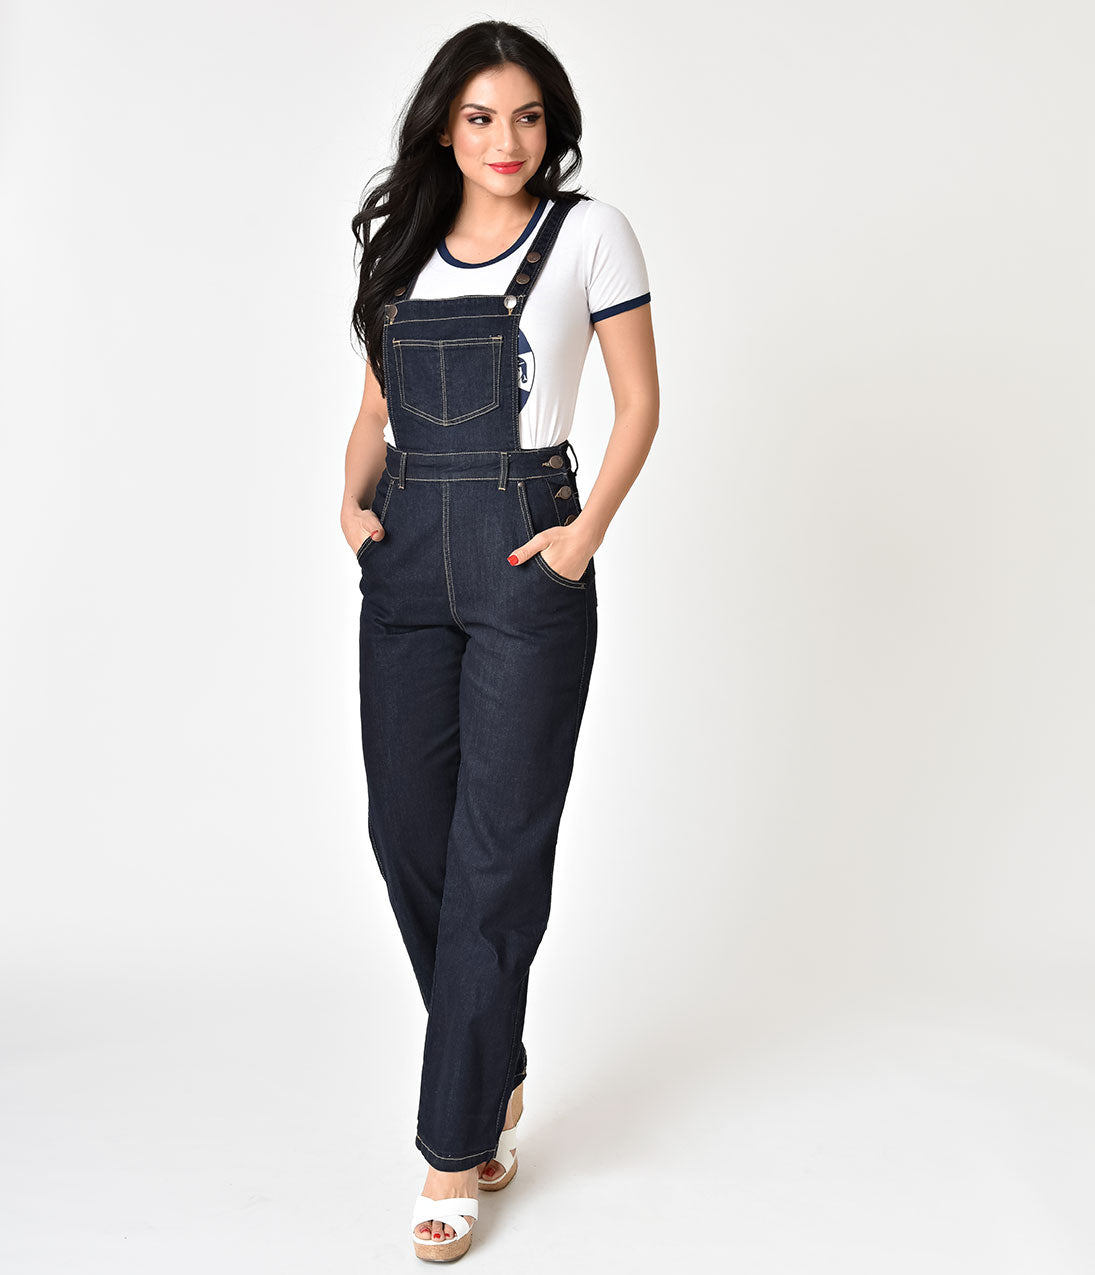 1950s Pants & Jeans- High Waist, Wide Leg, Capri, Pedal Pushers Hell Bunny Dark Dungaree Elly May Overalls $62.00 AT vintagedancer.com